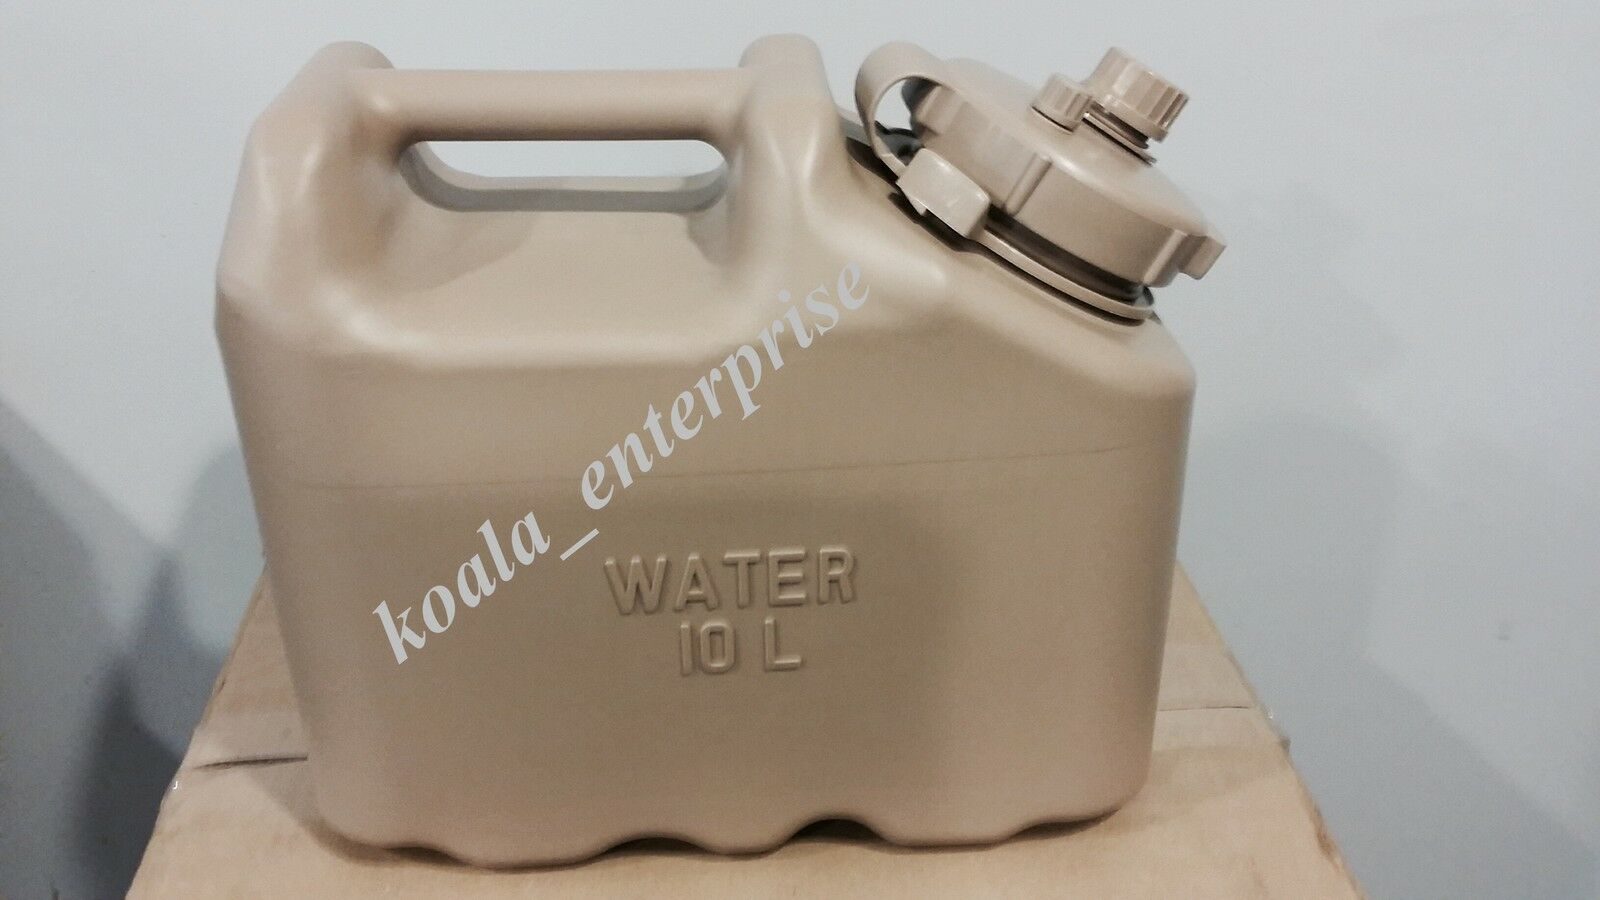 SCEPTER MILITARY WATER CAN 2 1/2 gallon Military Water can. Desert Sand Farbe